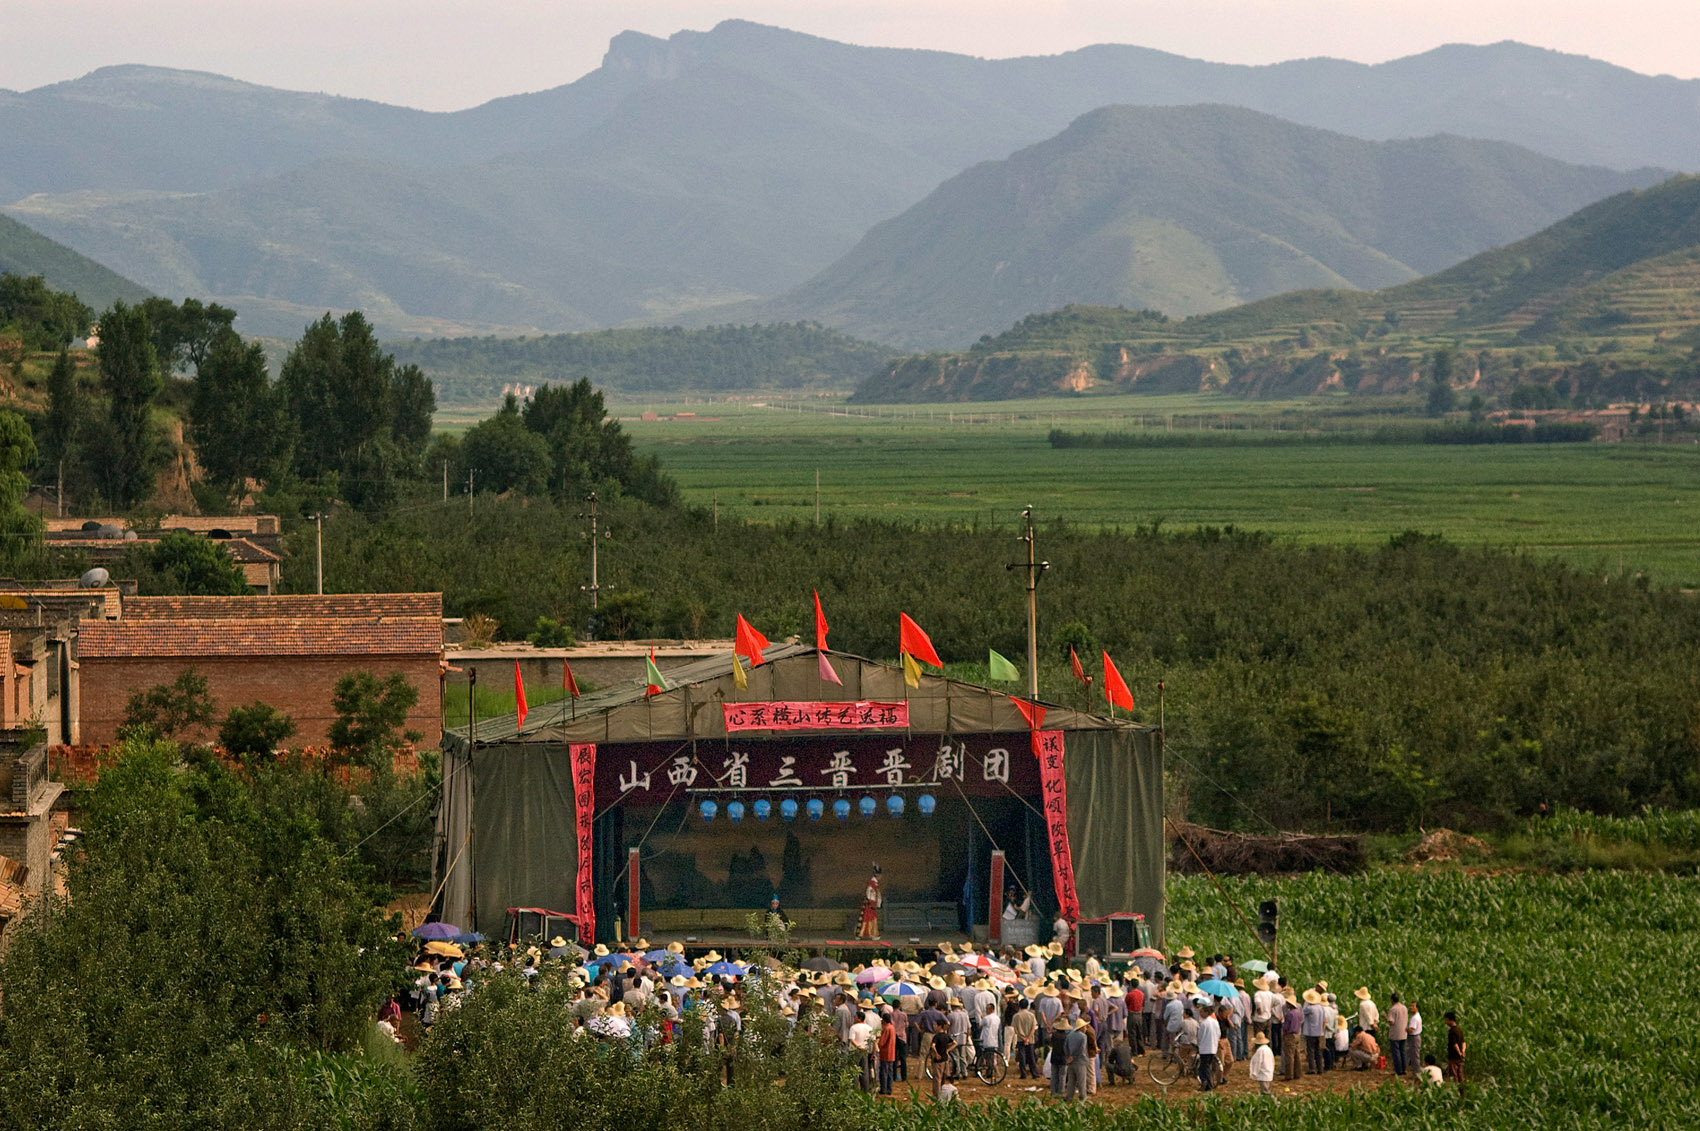 In the countryside the troupe has set up stage and is in front of an audience of peasants wearing straw hats.   Eight hours a day, seven days a week, Gao, Tianjun and their friends are on stage, impersonating Princes, Generals and Emperors. Keeping alive one of China greatest cultural heritage, its opera.Under scorching heat or freezing cold, they sing, dance and mime stories of love, wars and treason in front of a mesmerized audience of peasants. They go from villages to cities, year around, bringing with them stories of an ancient and long gone China. Their shiny and colorful clothes off, they live the low life, sleeping and eating on the floor, trying to make-do with the meager money earned from their skillful art.